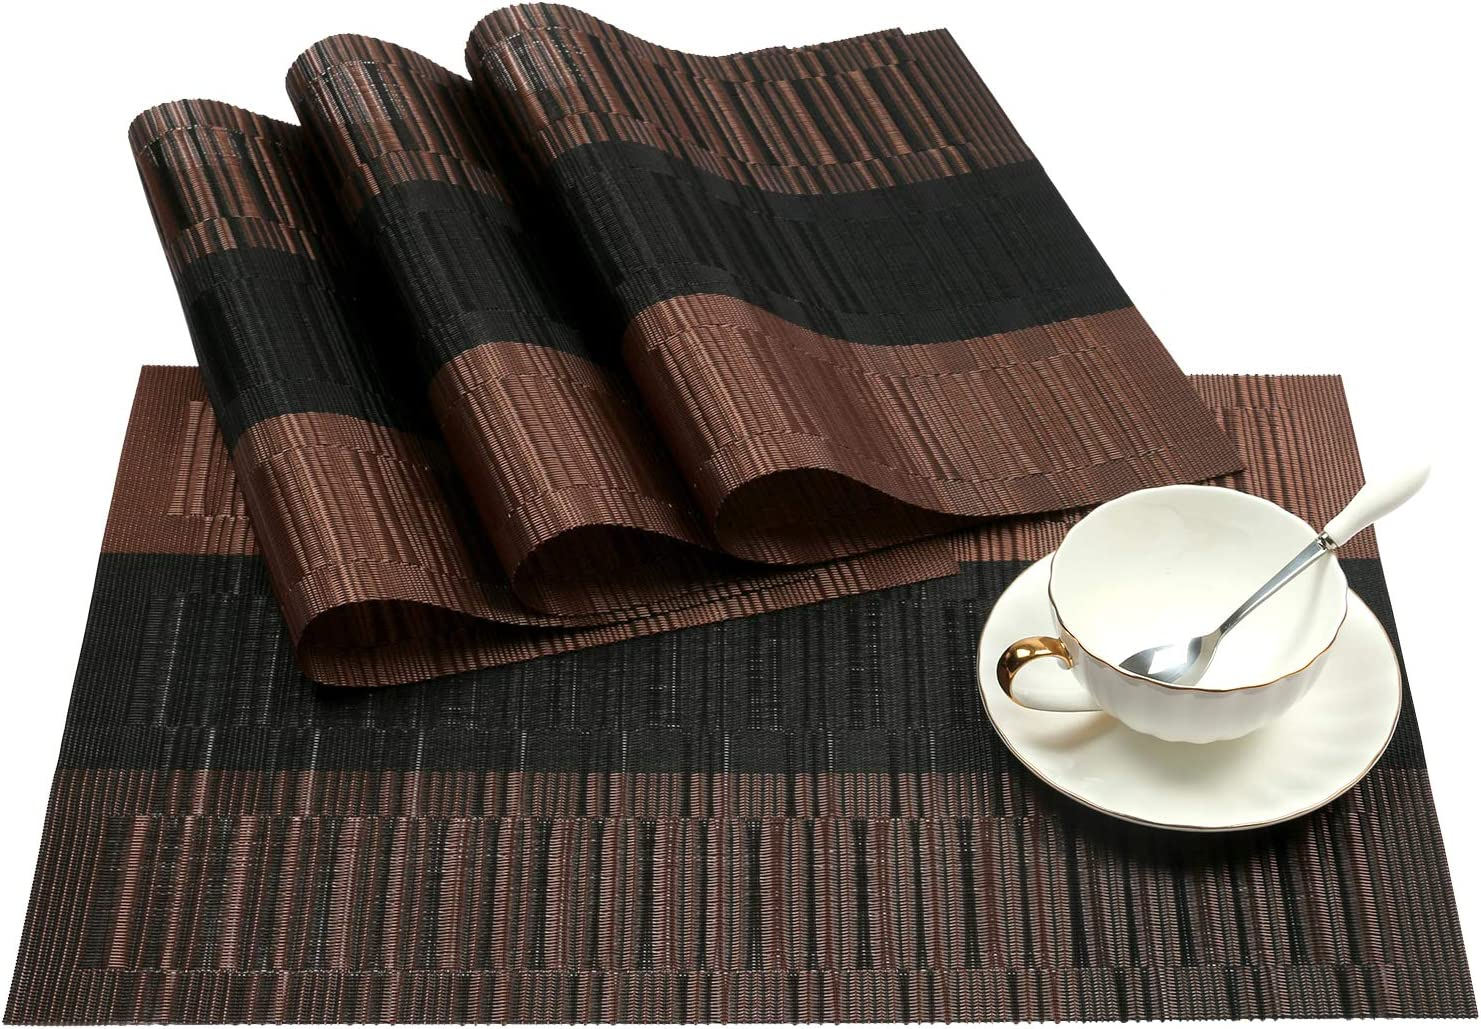 SHACOS Placemats Set of 4 Woven Vinyl Placemat for Dining Table Heat Resistant Wipe Clean (4, Ombre Coffee Black)